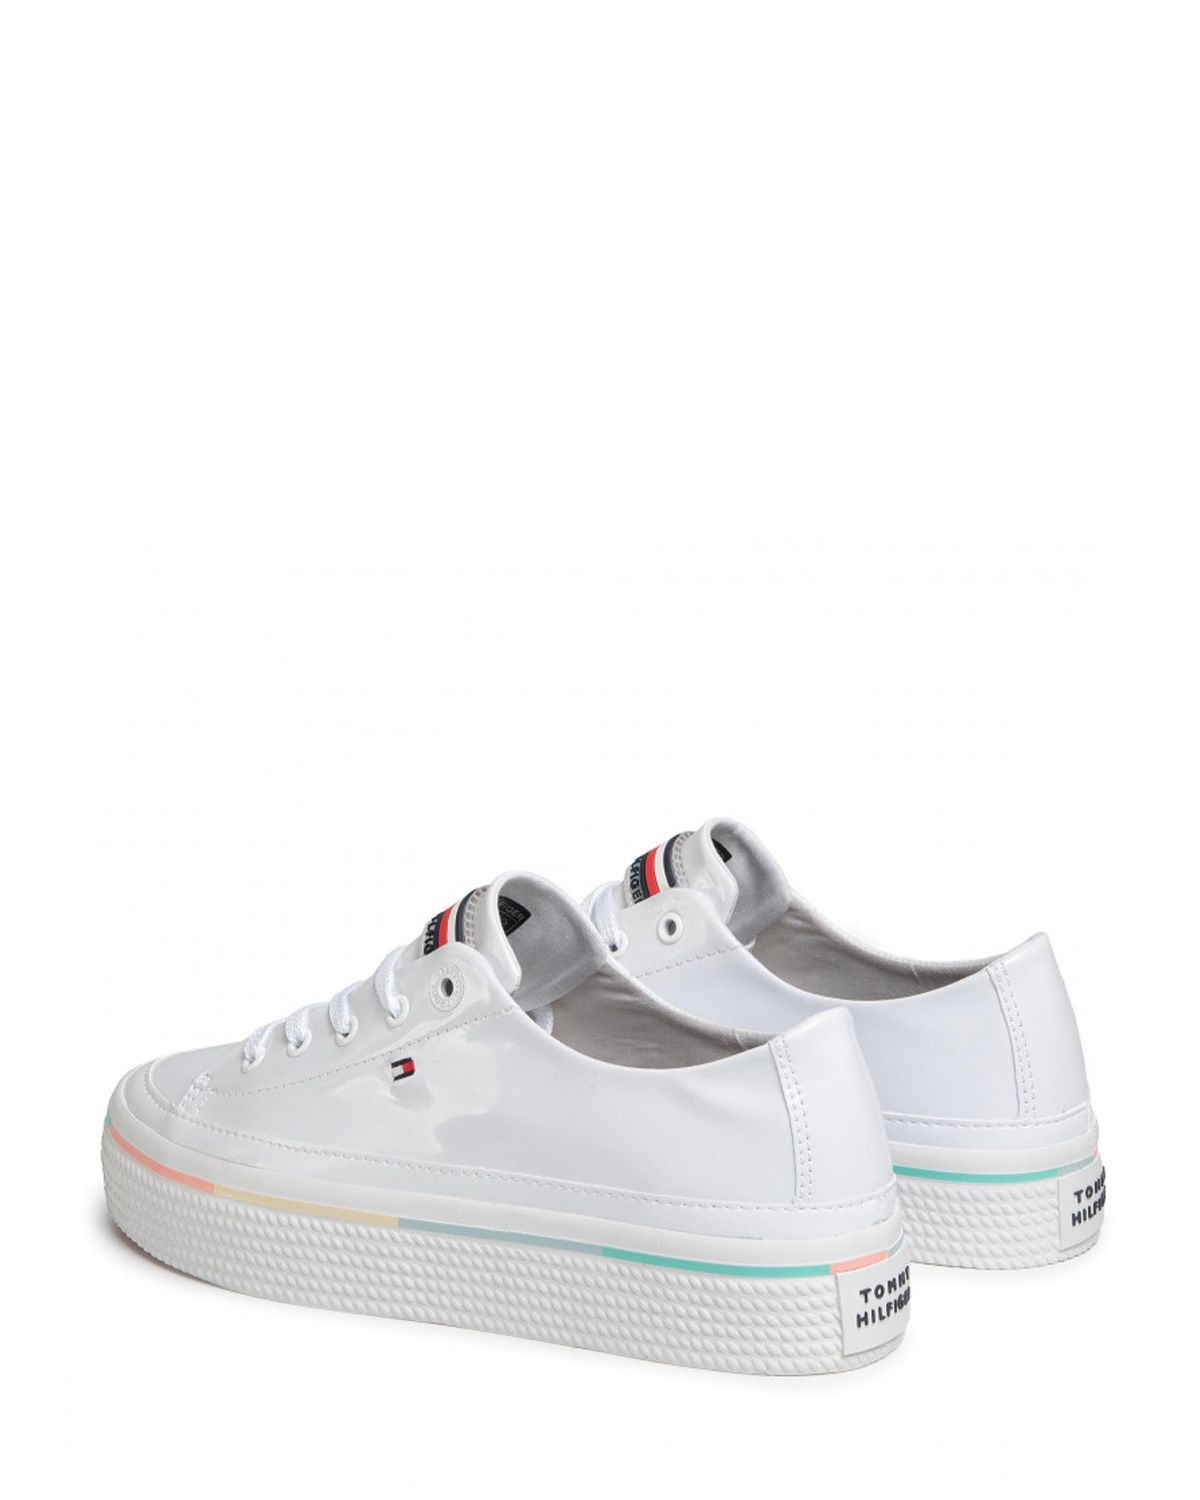 Tommy Hilfiger Striped Flatform Sneakers FW0FW04710 White